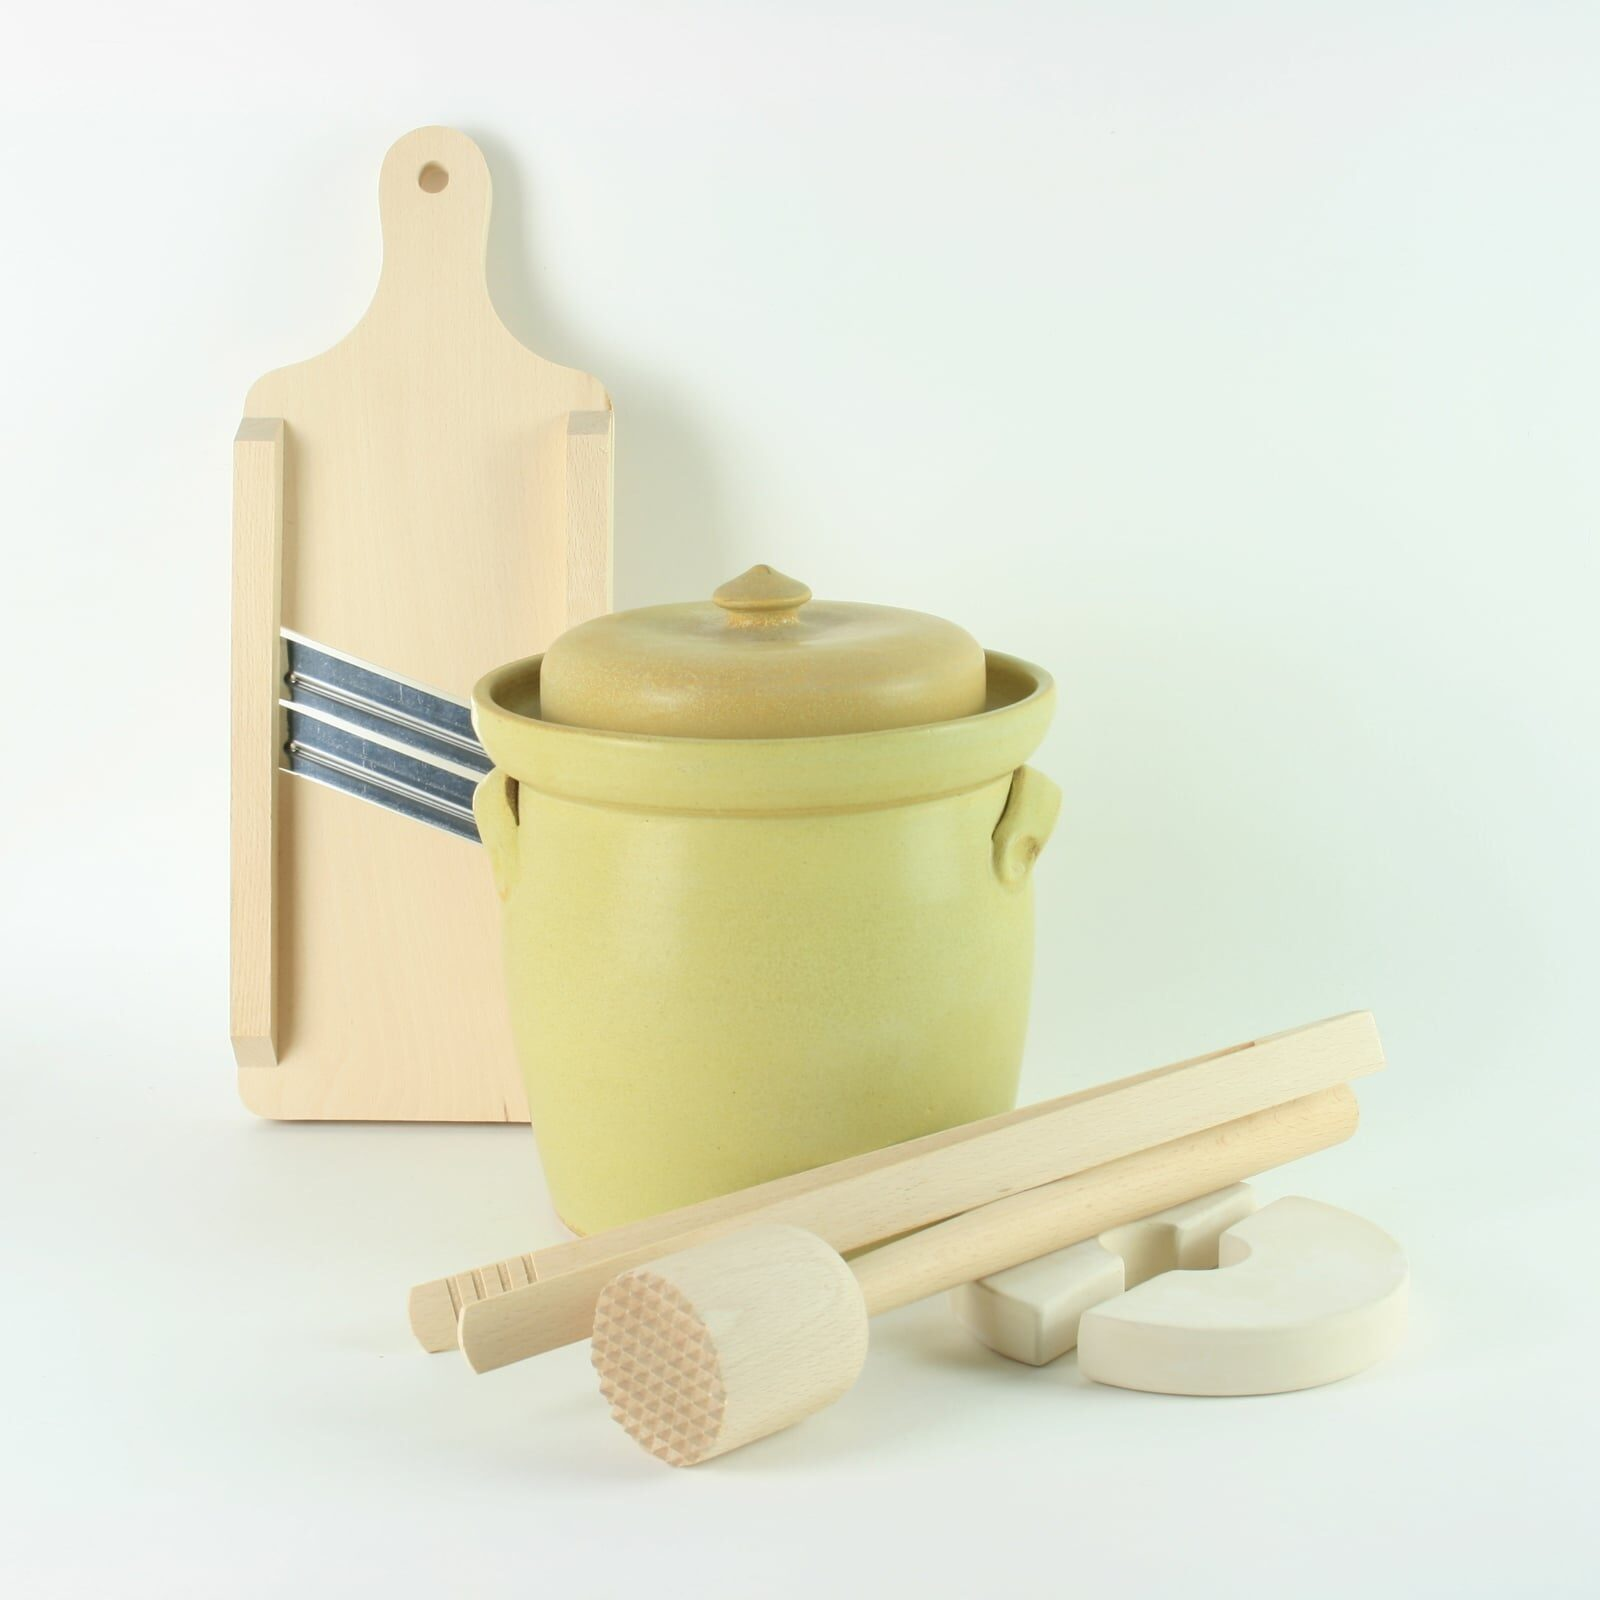 handmade 2.5 litre ceramic fermentation crock set for making sauerkraut, kimchi and pickles with wooden tools